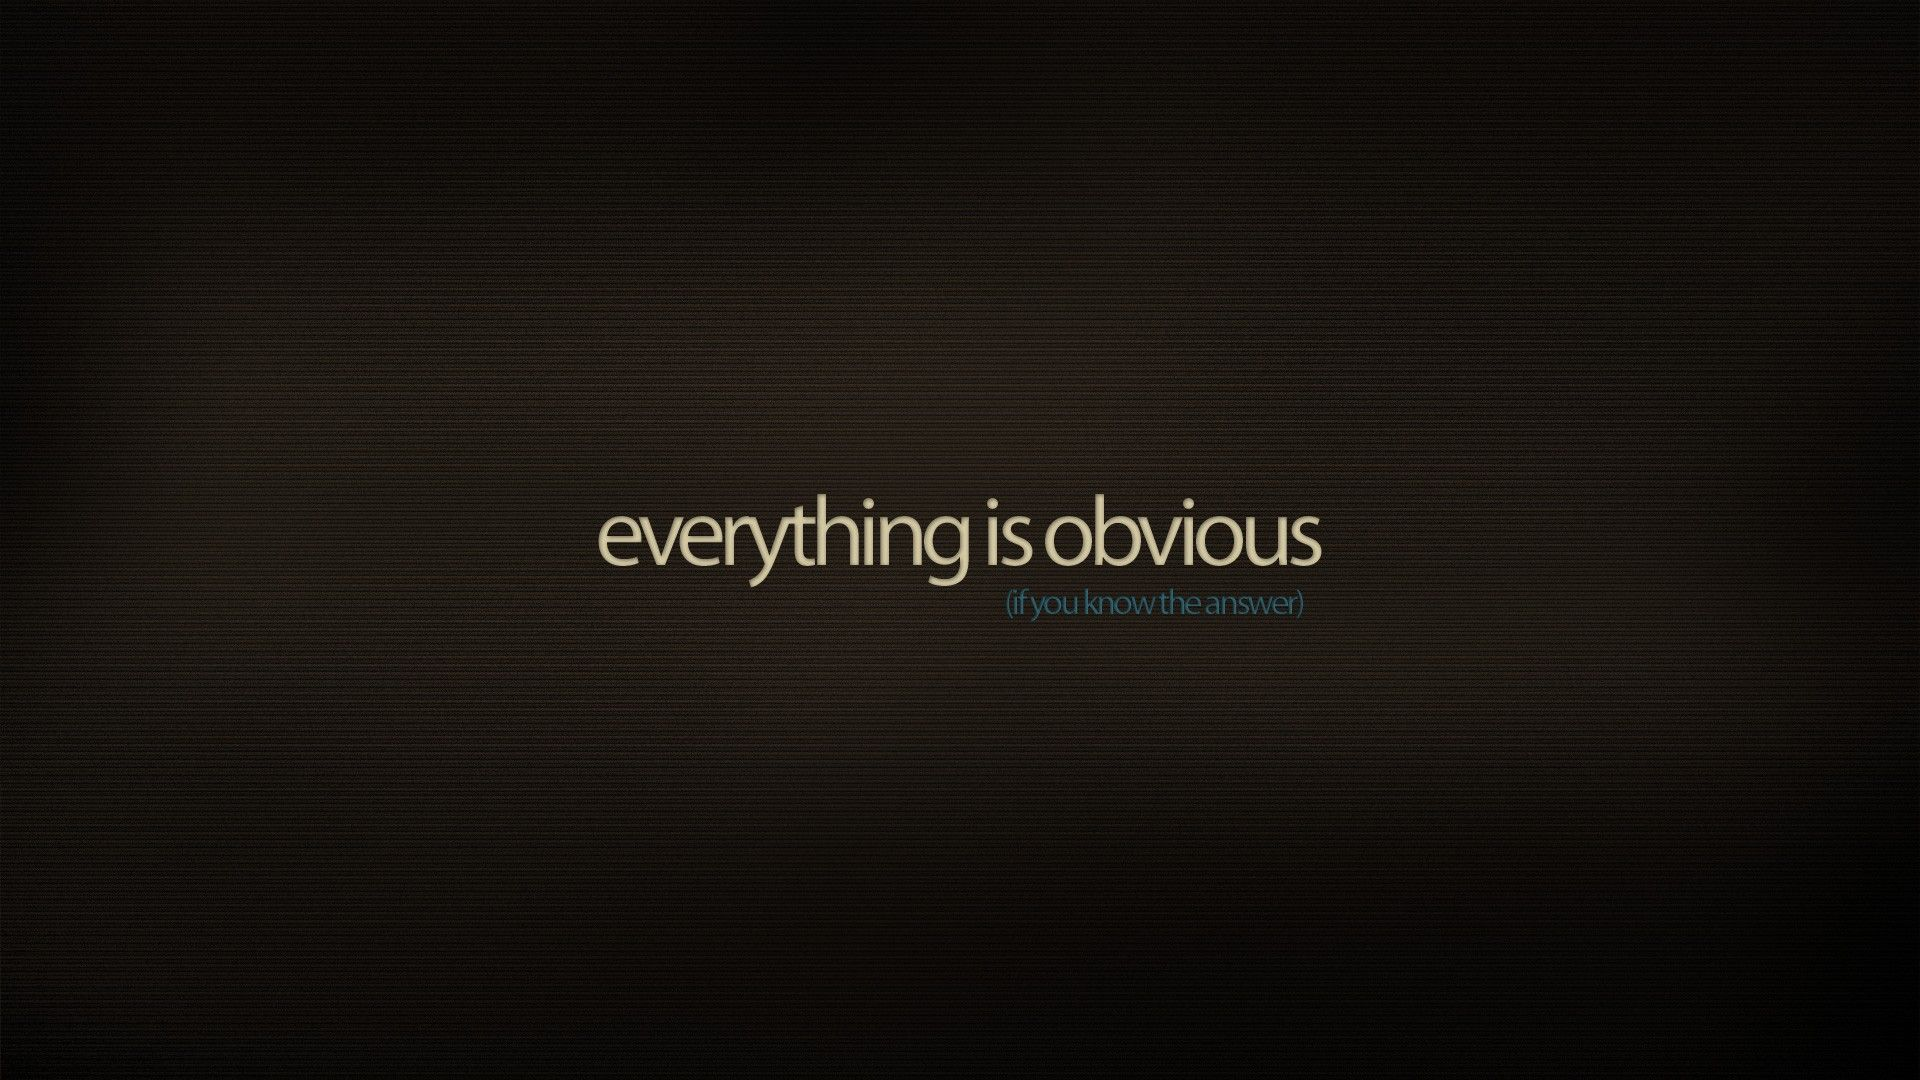 Obvious Black Background Quotes Hd Wallpaper Quotes Quote Backgrounds